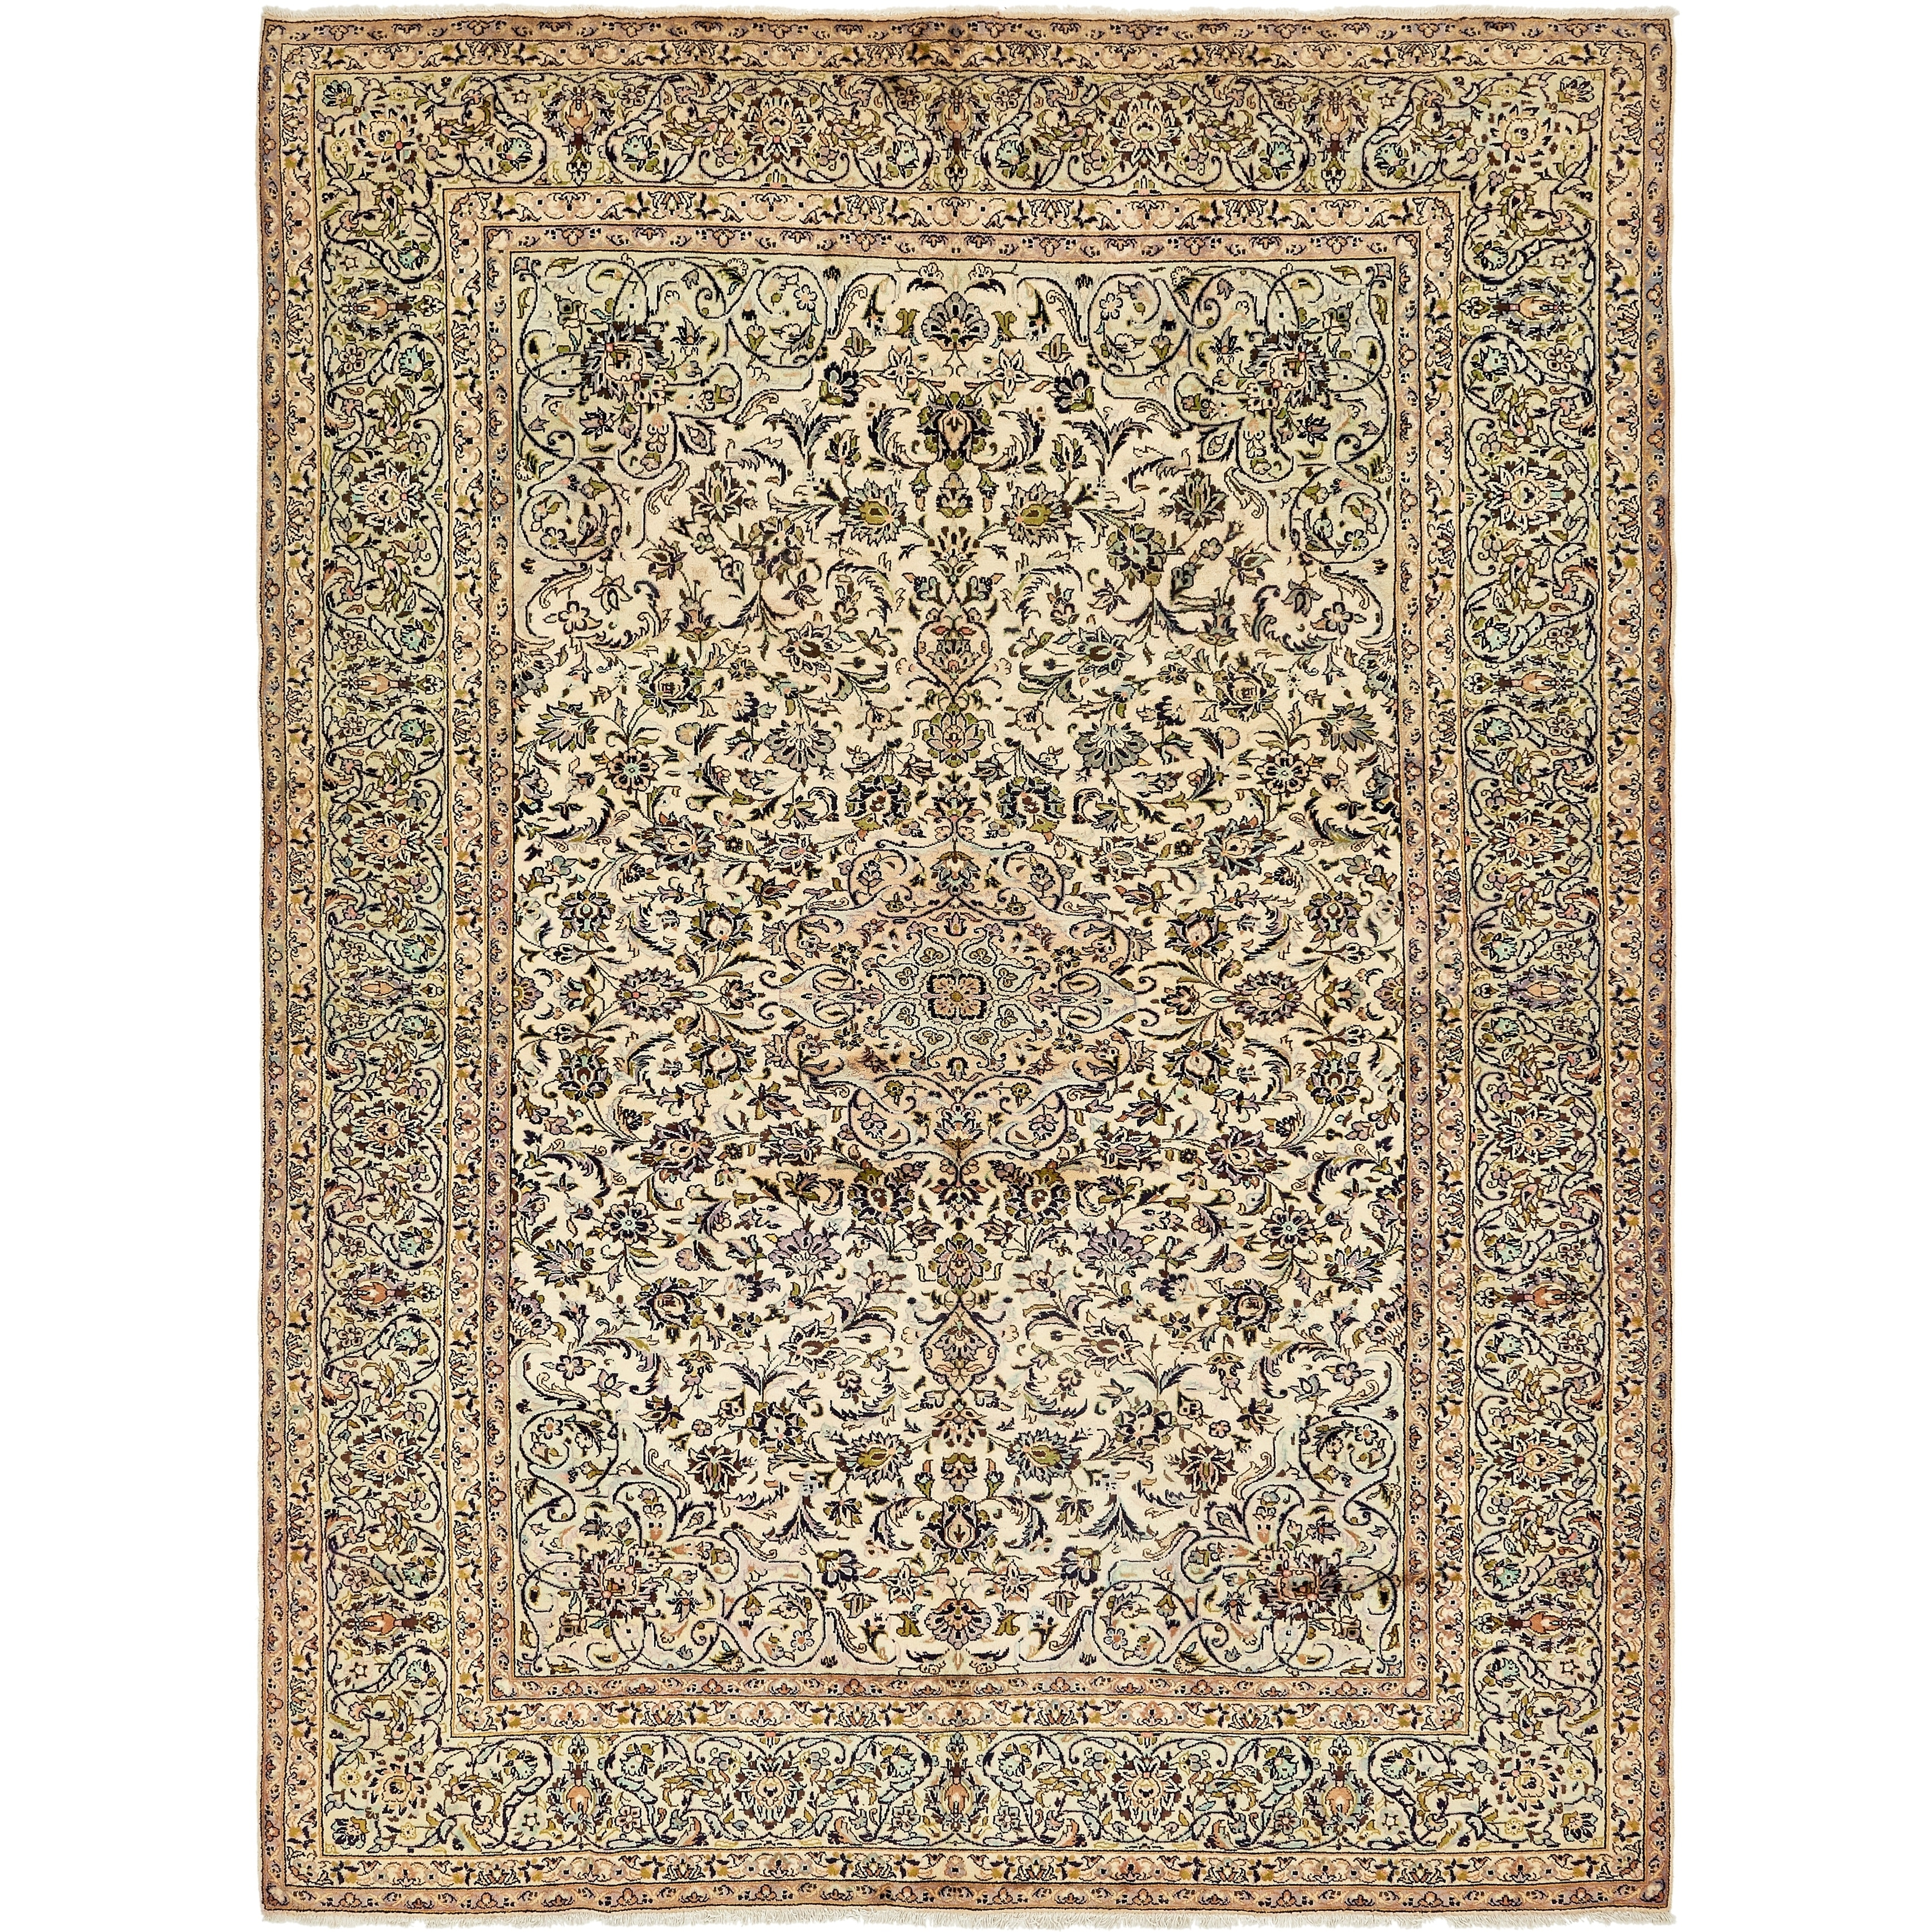 Hand Knotted Kashan Semi Antique Wool Area Rug - 9 7 x 12 9 (Ivory - 9 7 x 12 9)